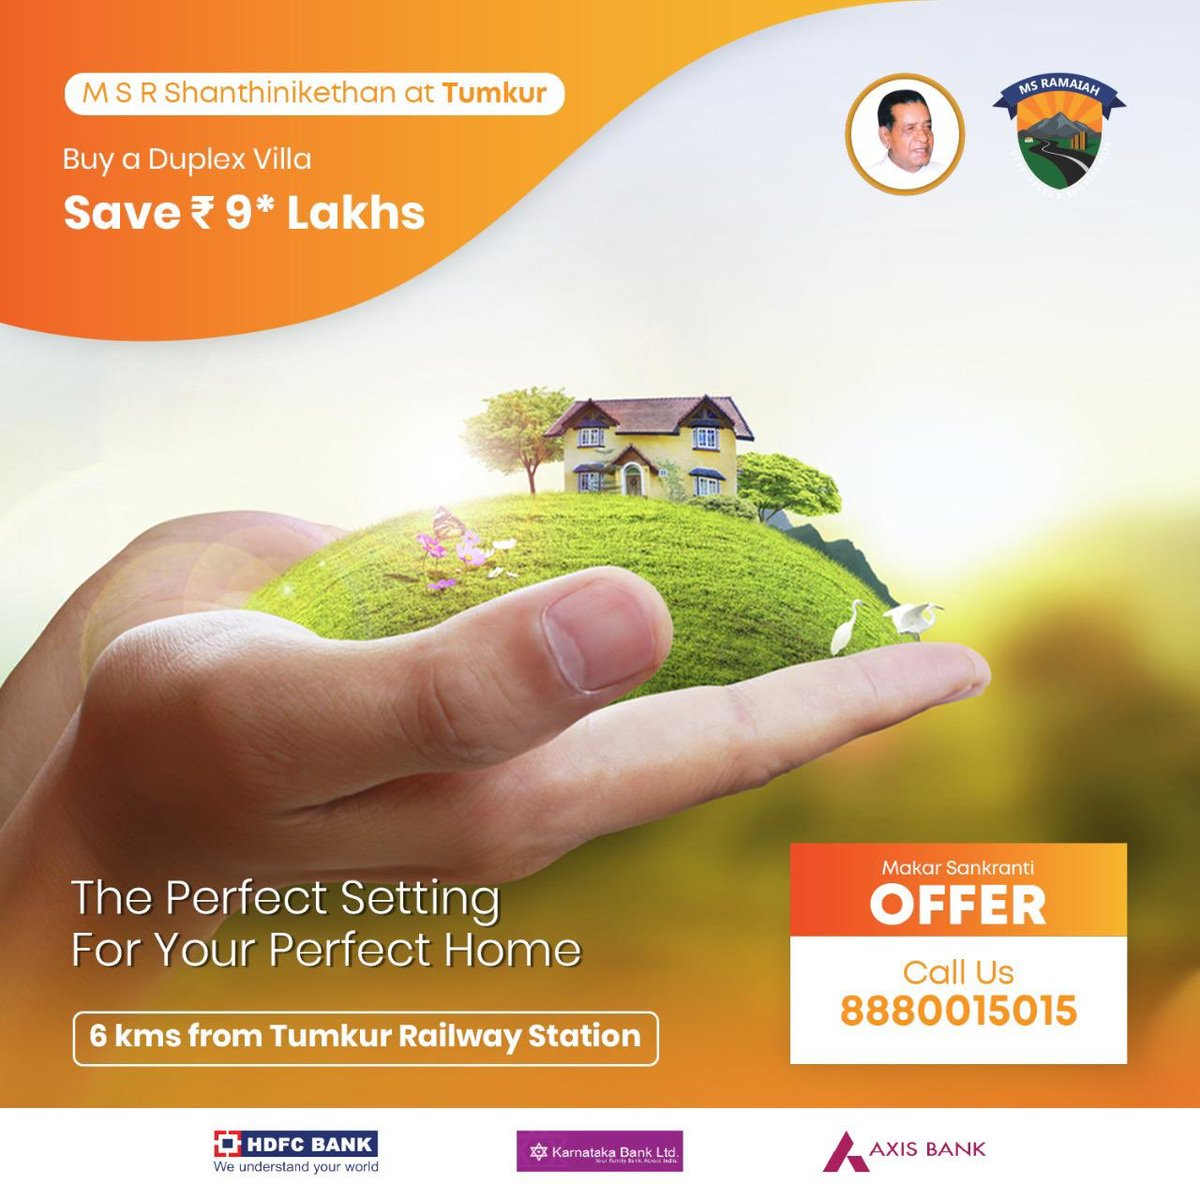 Spread across 40 acres, #MSR #Shanthinikethan offers you a wonderful home in a serene location where greenery triumphs urbanisation. Call us now and avail the exciting offer. #MSRDB #Tumkur #Home #Sankranti #MakarSankranti #MakarSankranti2020